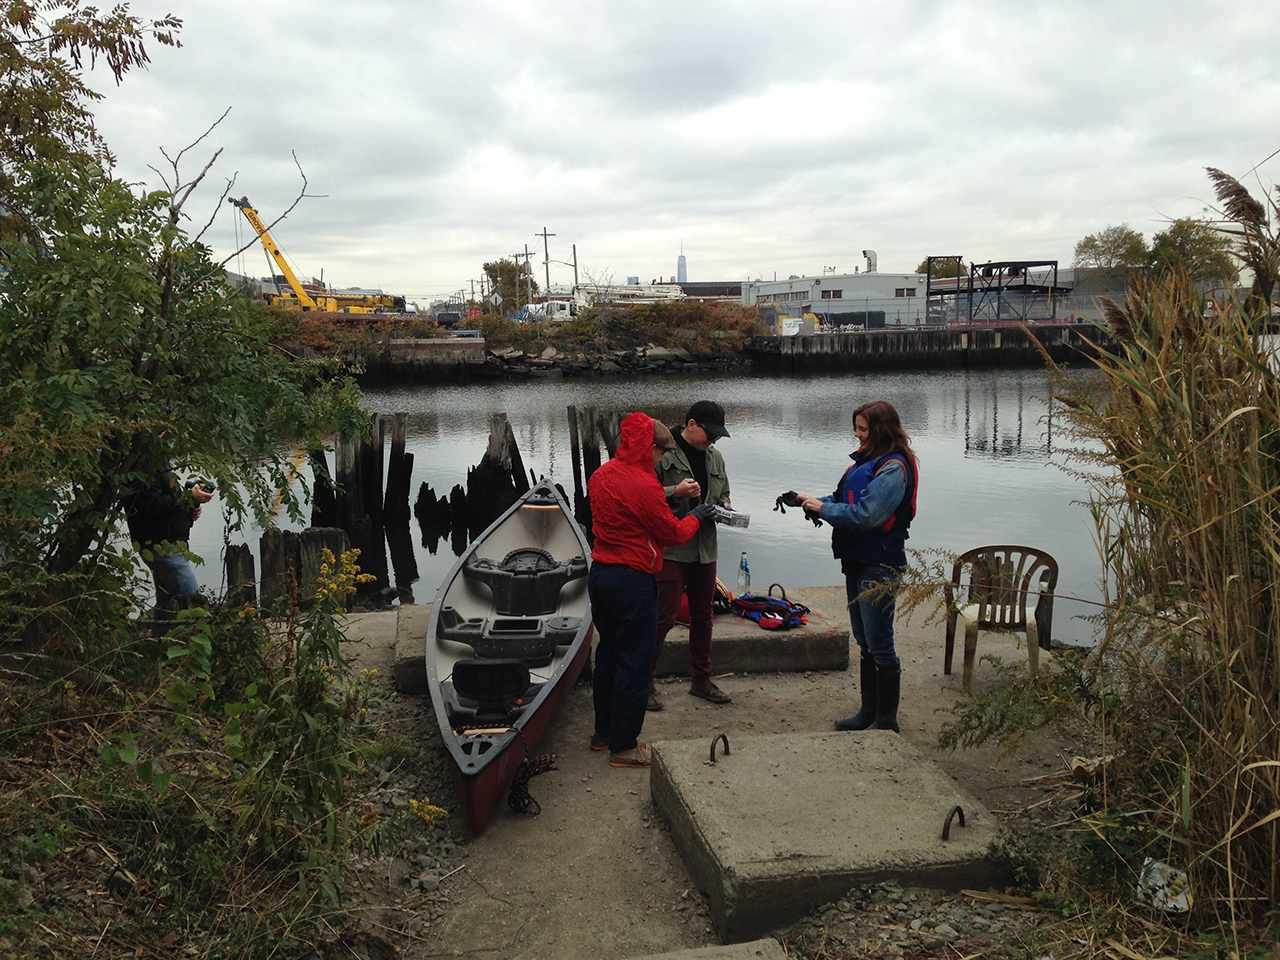 Preparing to head out onto Newtown Creek (all photos by the author for Hyperallergic)